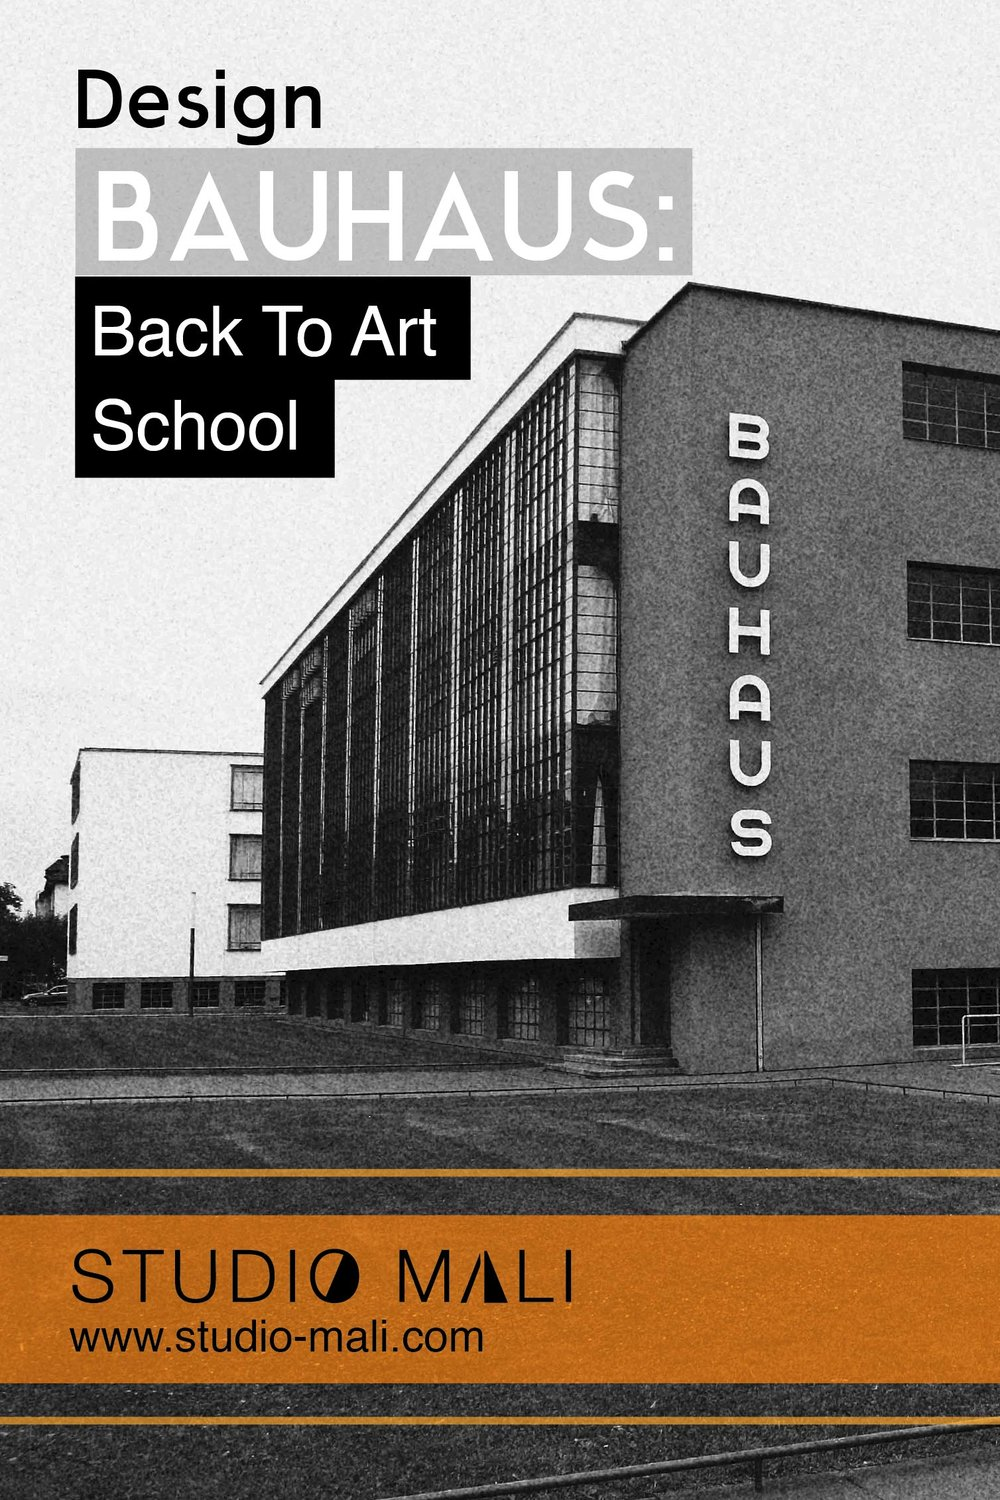 Bauhaus: Back To Art School